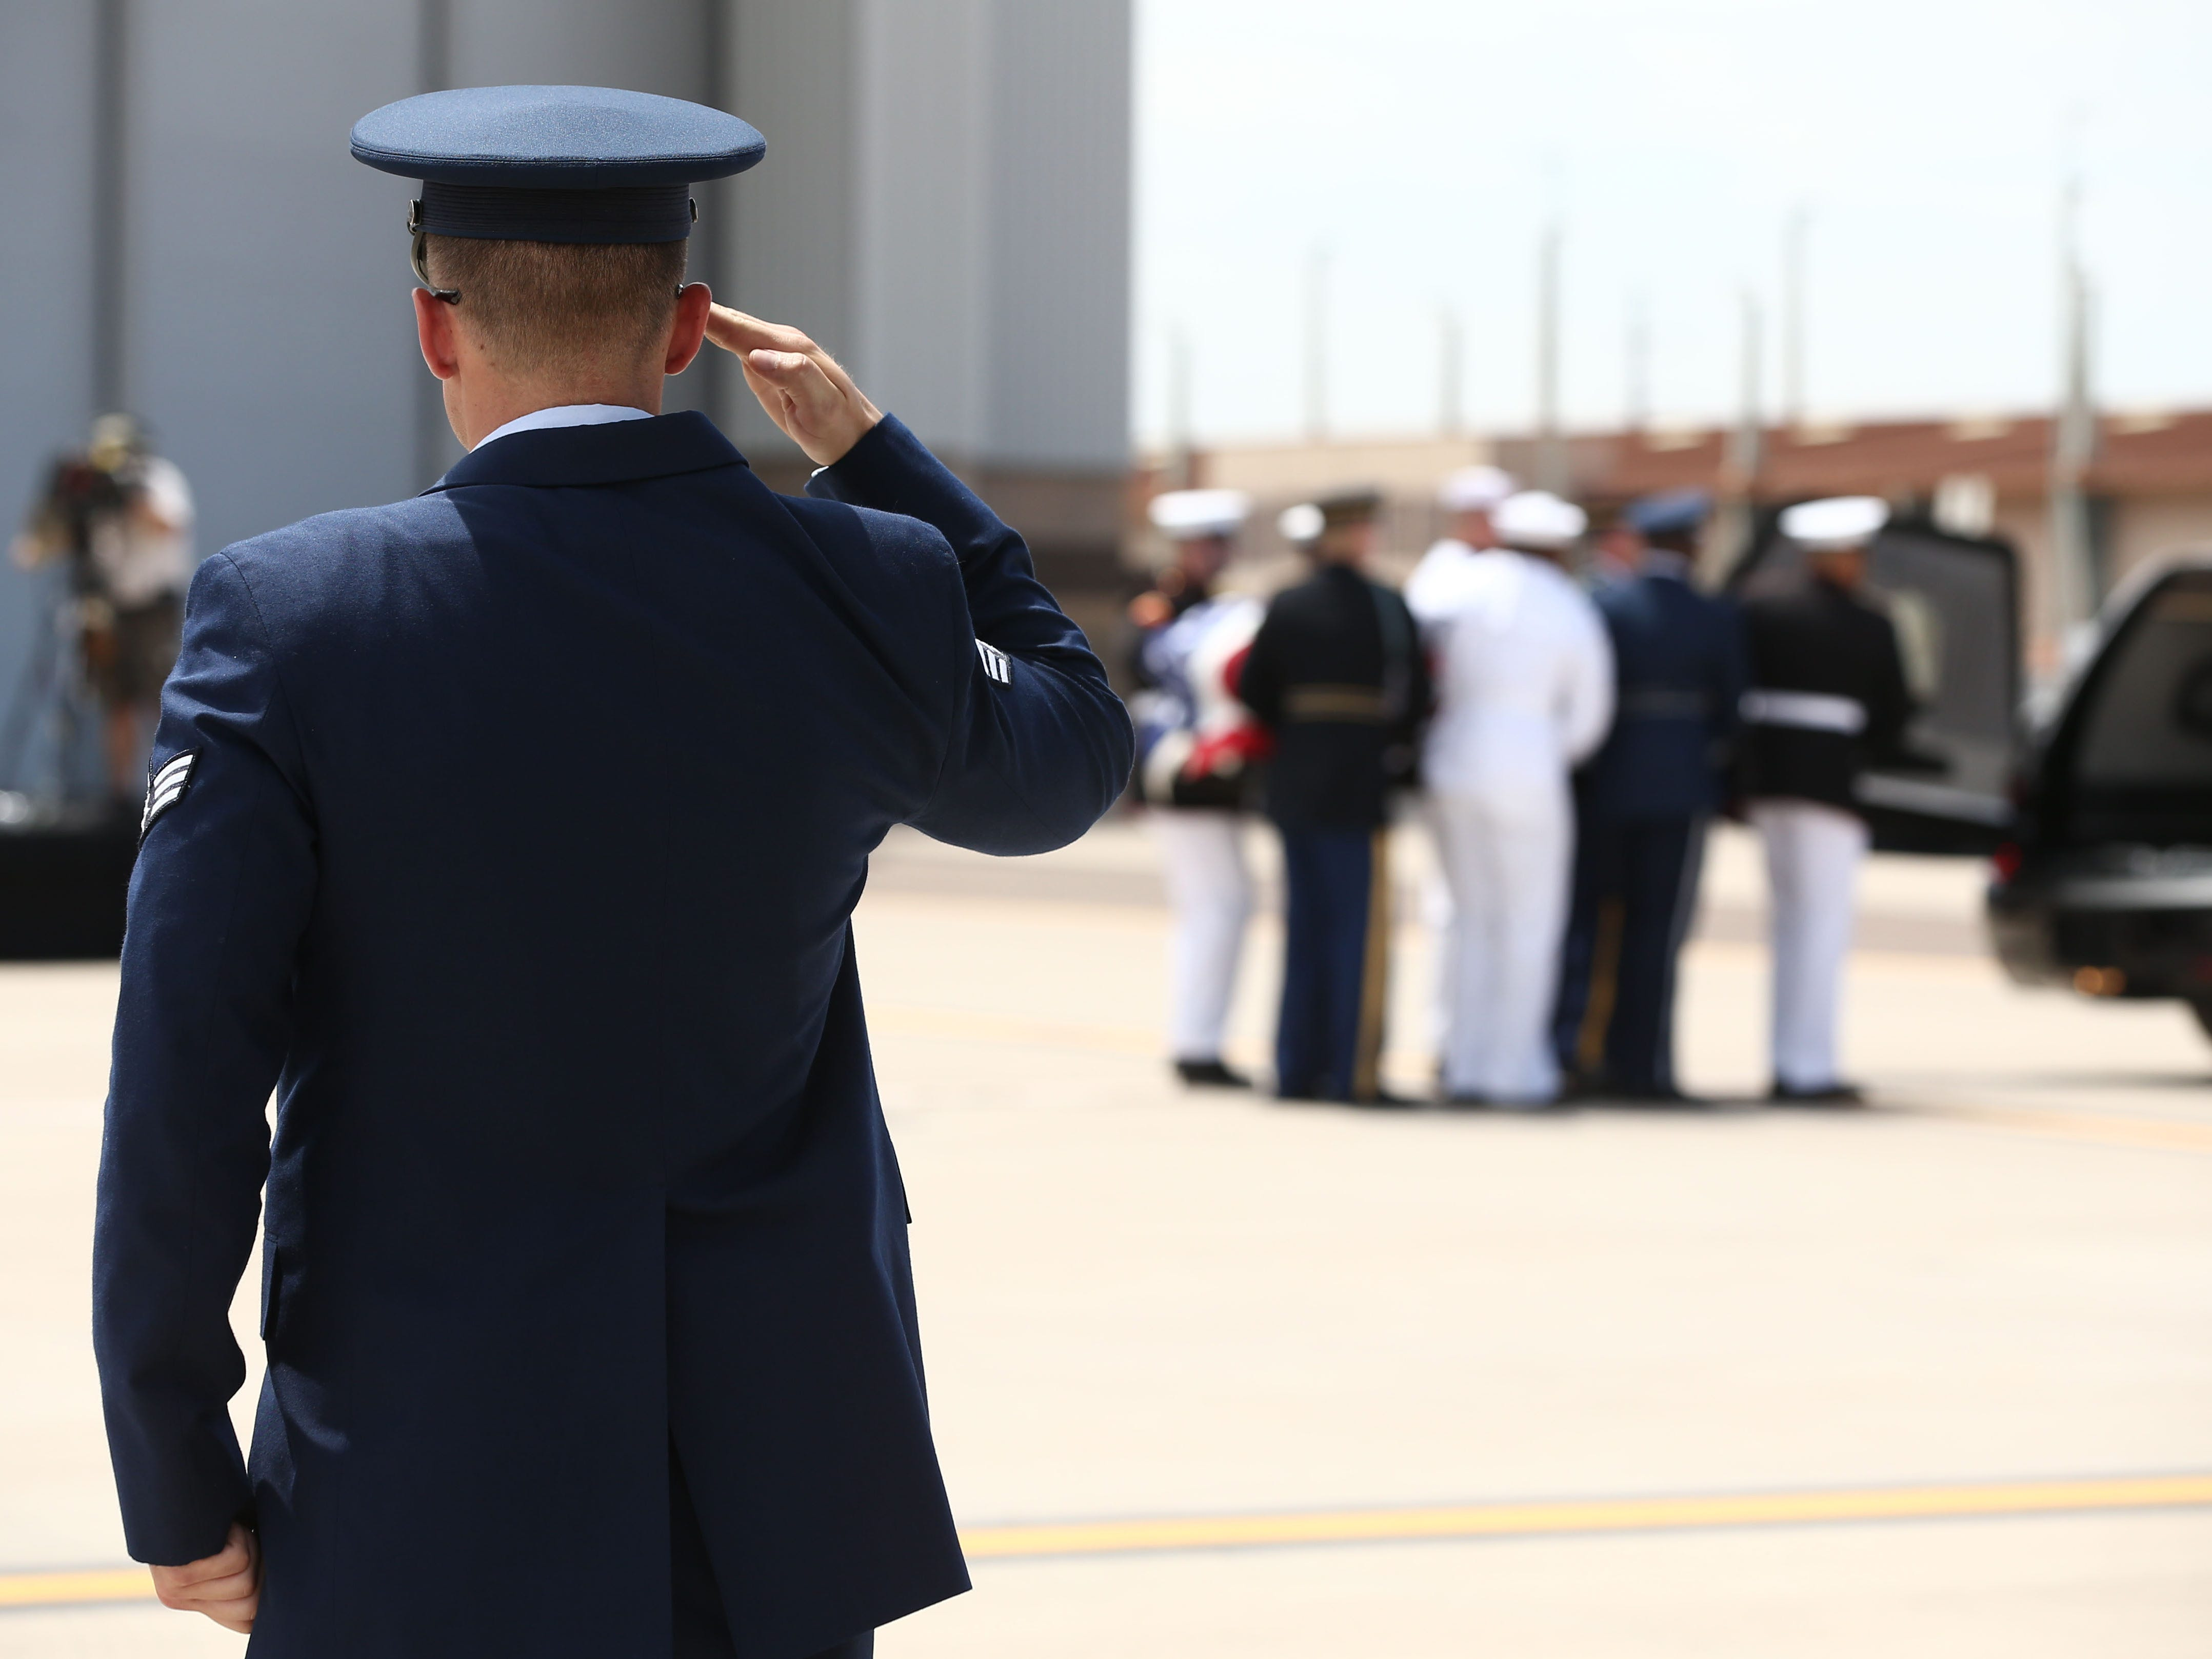 Aug 30, 2018; Phoenix, AZ, USA; The flag draped casket of Sen. John McCain is carried to the plane during the transfer ceremony at the 161st Air Refueling Wing, a unit of the Arizona Air National Guard, at Goldwater Air National Guard Base at Sky Harbor International Airport. The body of Senator McCain was placed onboard a C-32 military aircraft to depart Arizona for the last time. Rob Schumacher/The Republic via USA TODAY NETWORK ORIG FILE ID:  20180830_gma_usa_459.jpg